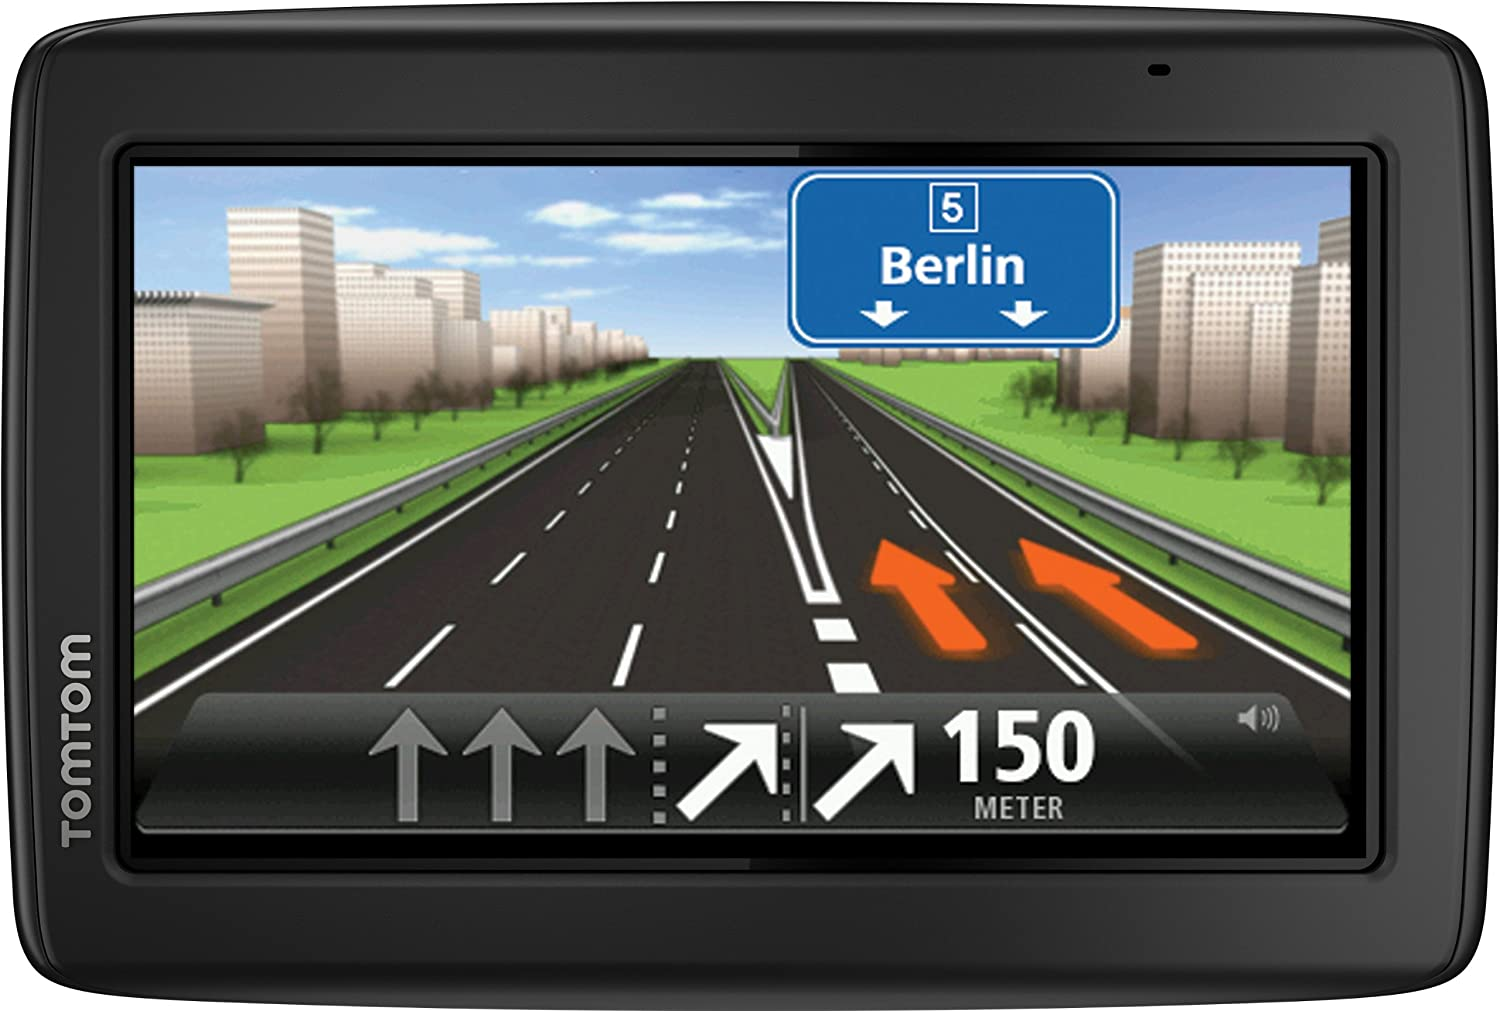 TomTom Start 25 M  Central Europe Traffic Navigationsgerät, Free Lifetime Maps, 13 cm (5  Zoll) Display, TMC, Fahrspurassistent, Parkassistent, IQ Routes,  Zentraleuropa 19